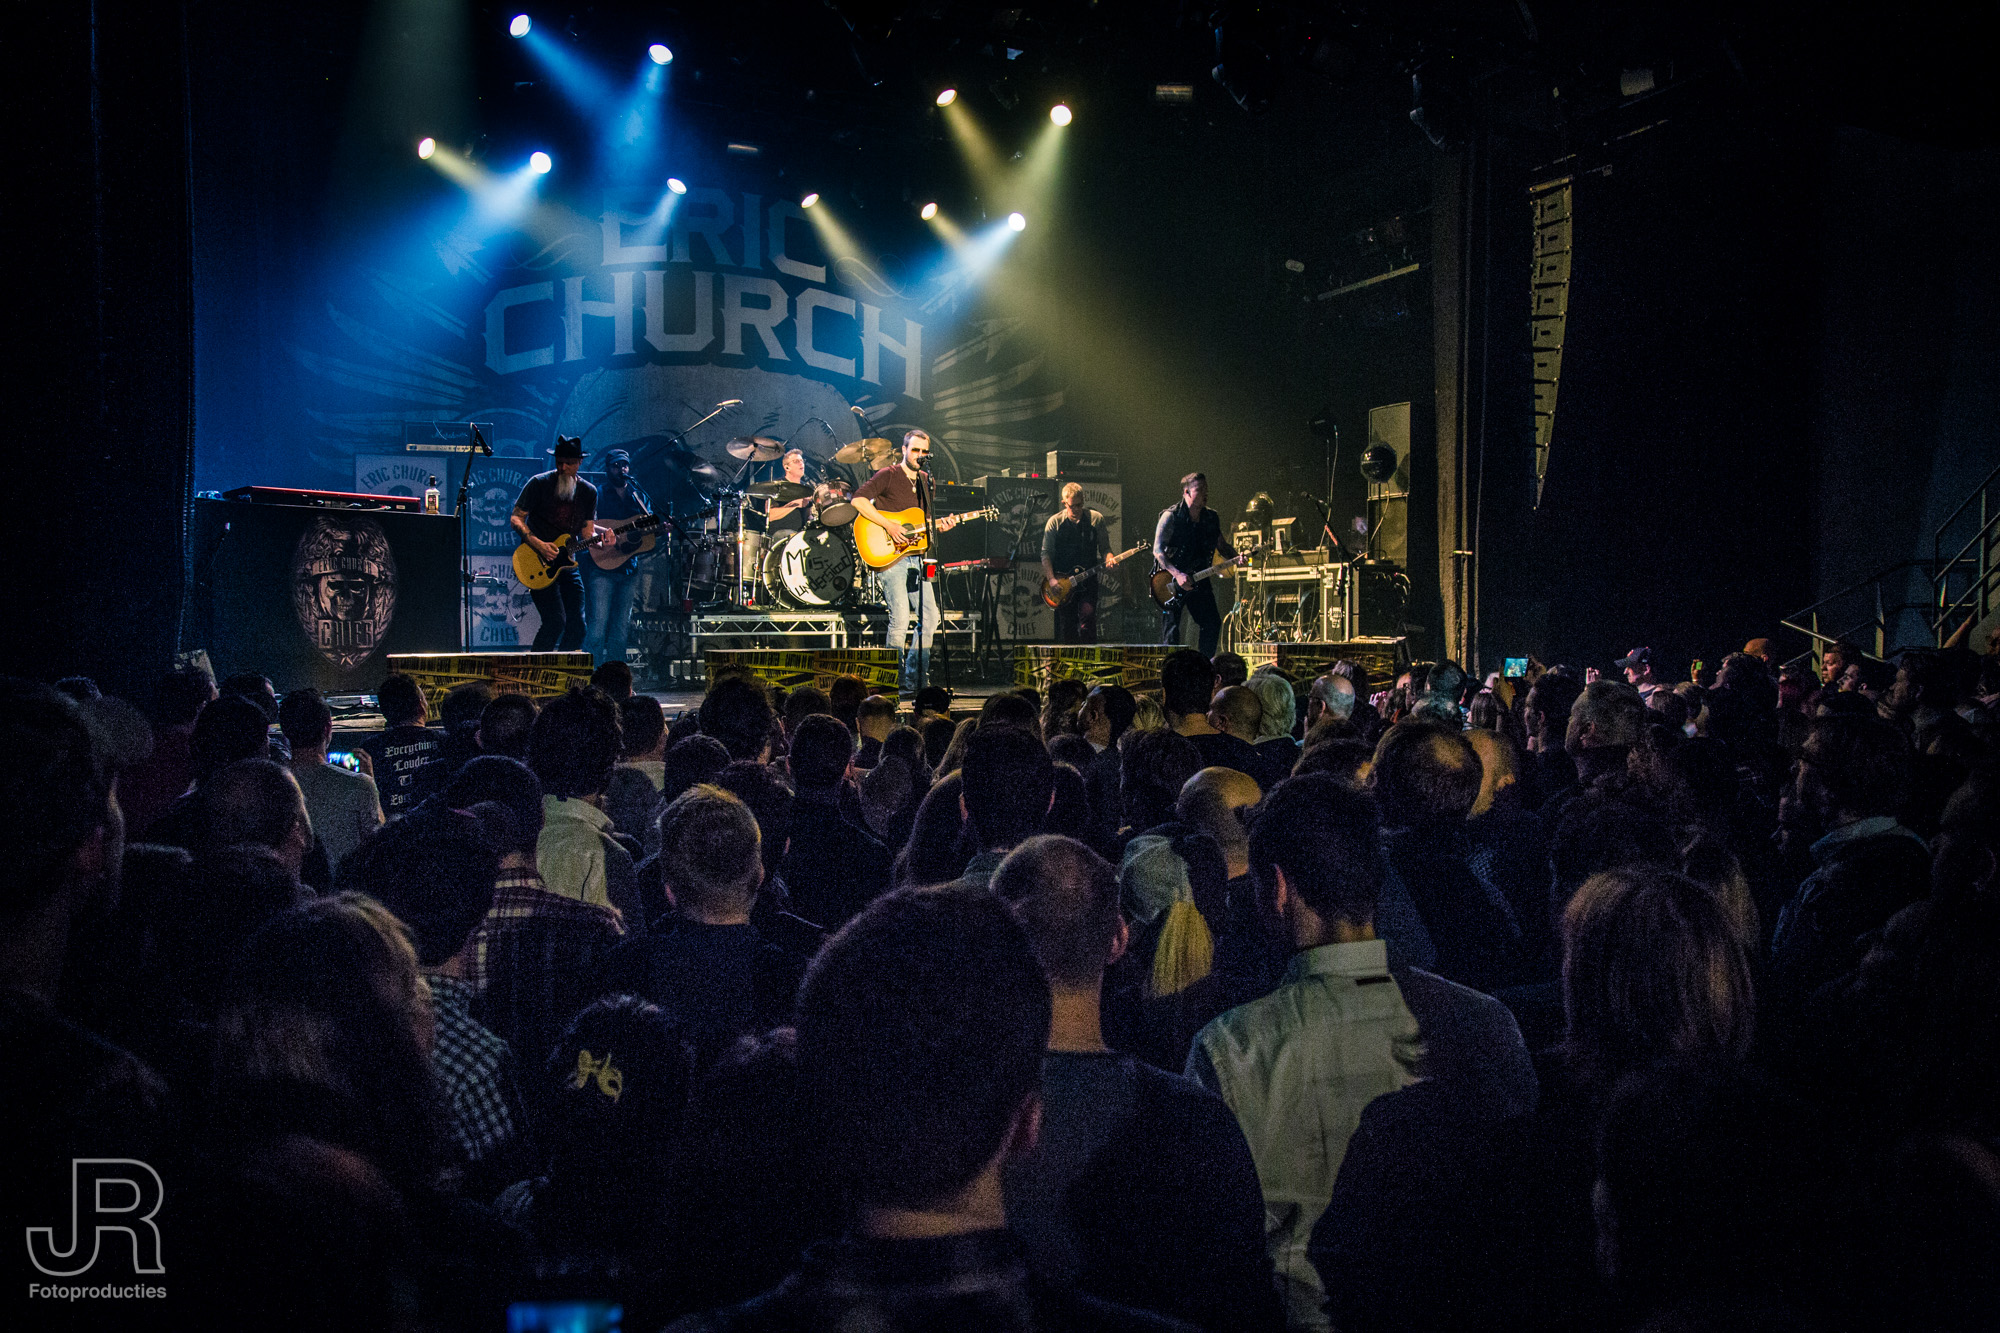 Eric Church Melkweg 8-3-2016